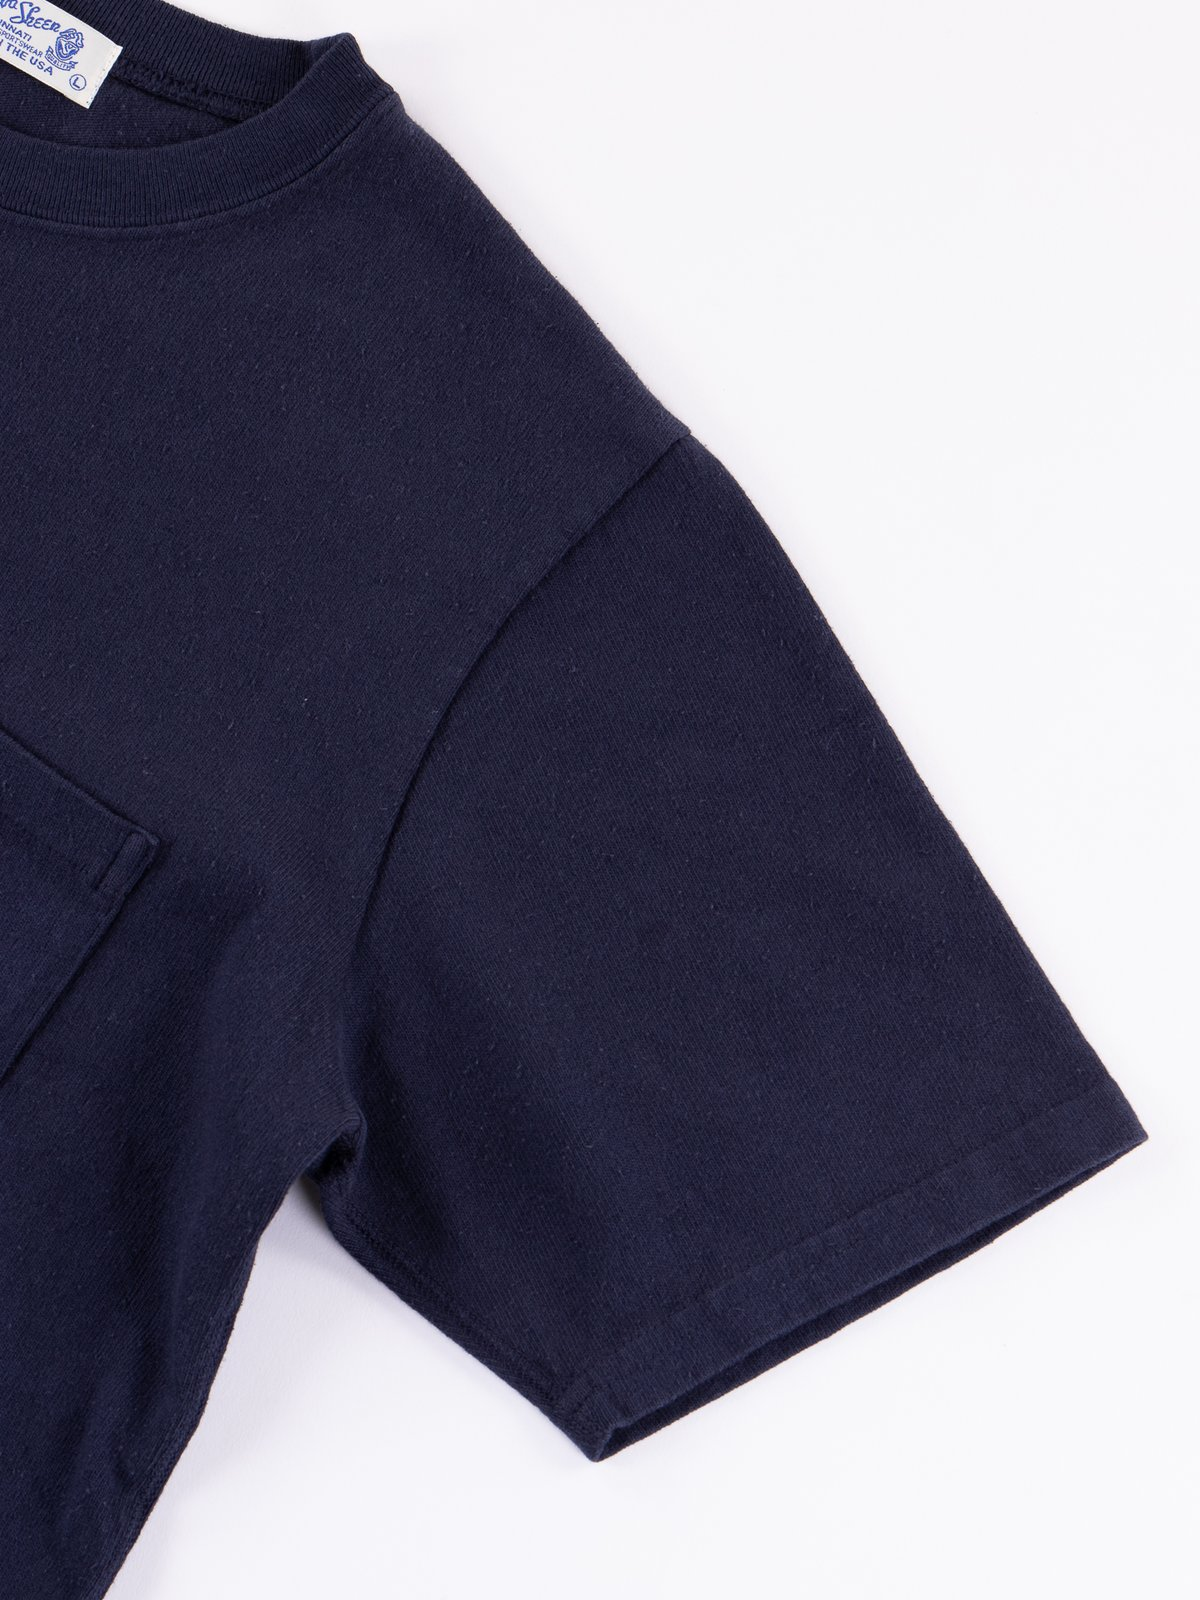 Navy Heavy Oz Pocket Tee - Image 4